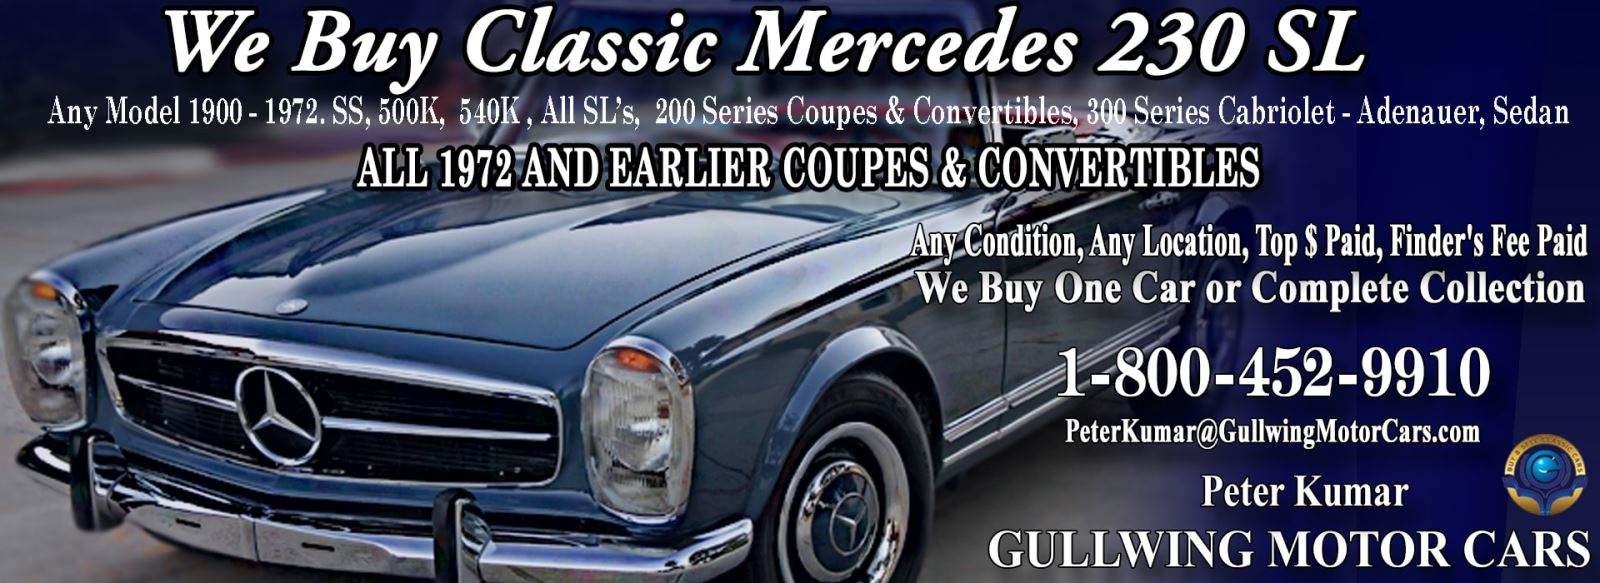 Classic 1963 Mercedes 230SL for sale, we buy vintage 63 Mercedes 230SL. Call Peter Kumar. Gullwing Motor